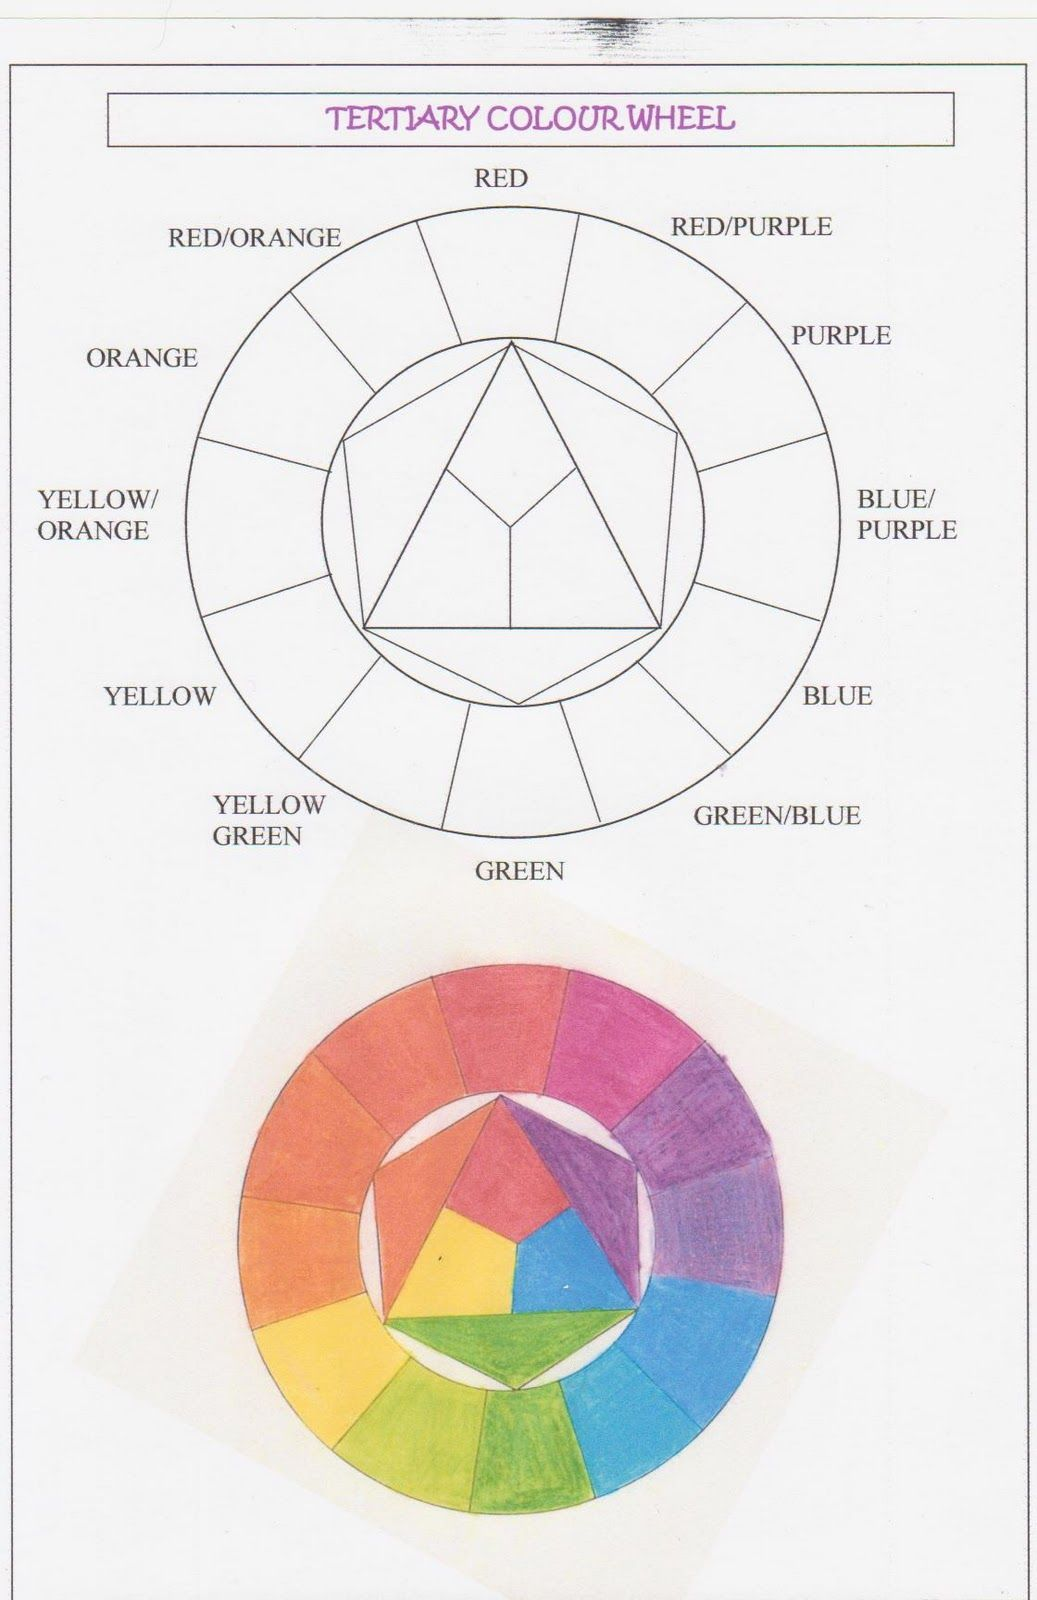 Tertiary Colour Wheel